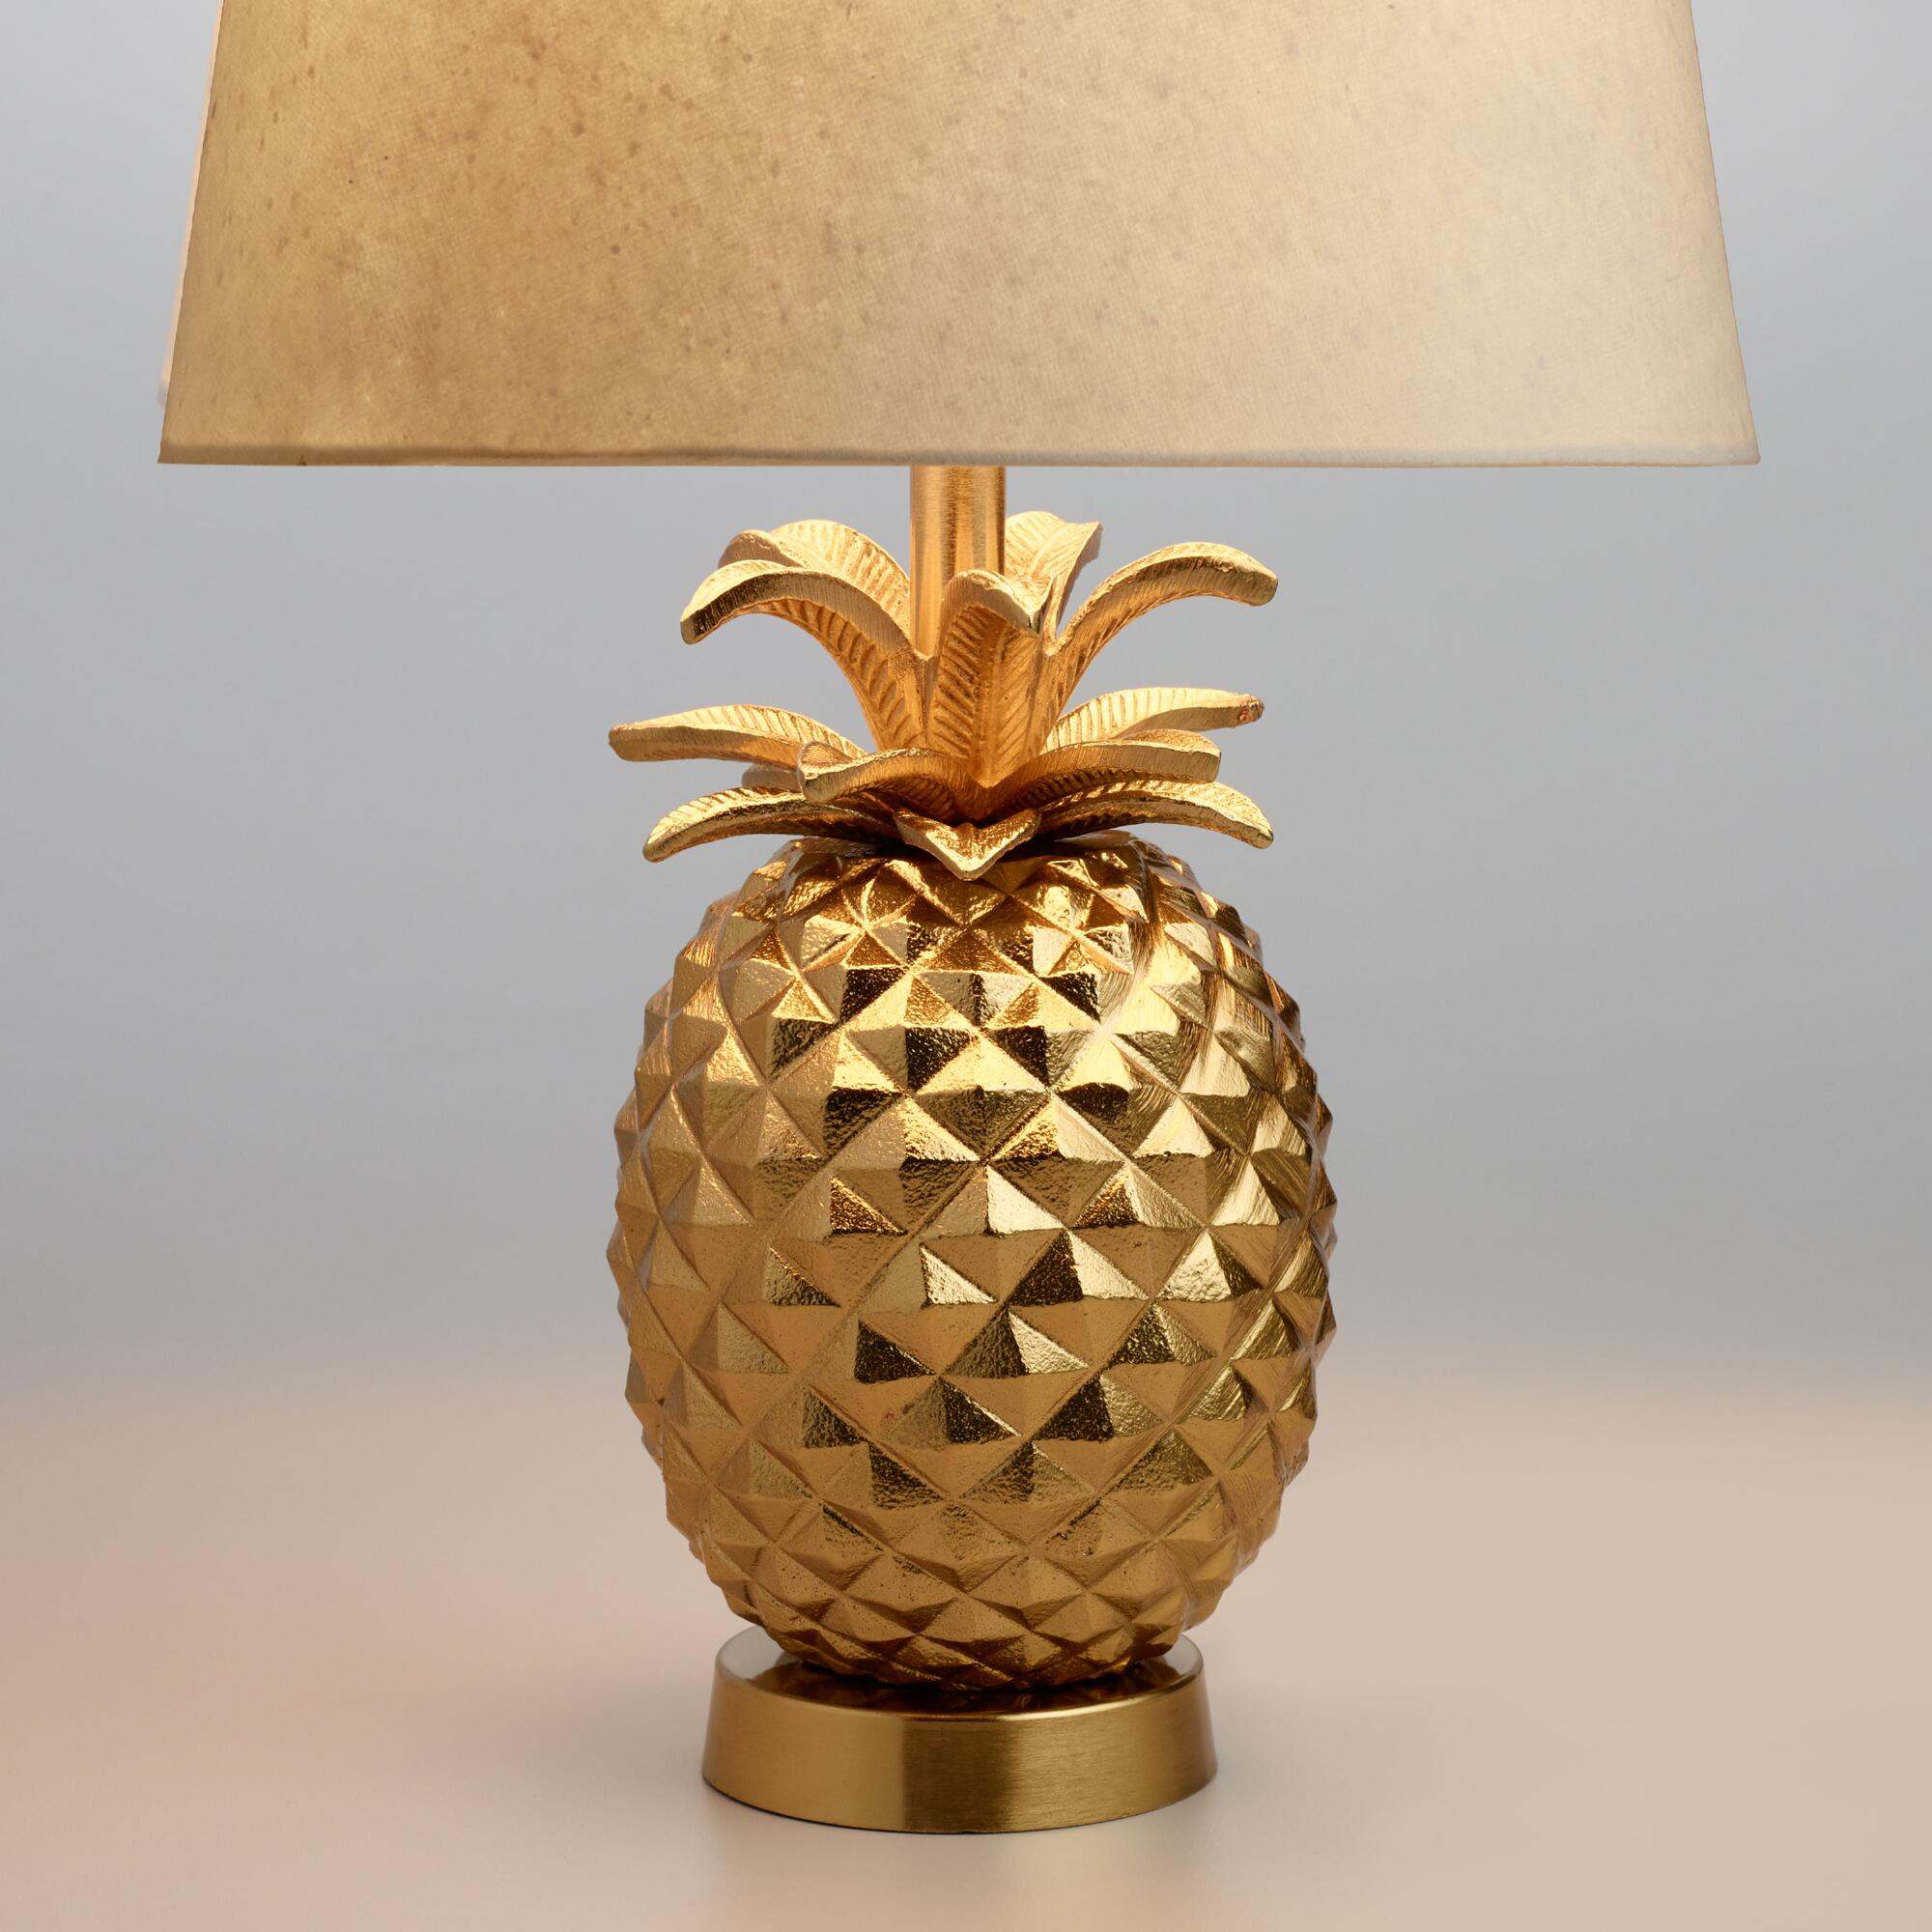 accent lighting unique table lamps world market iipsrv fcgi brass pineapple lamp base mirrored console with drawers rustic coffee plans yellow retro sofa outdoor wicker chairs